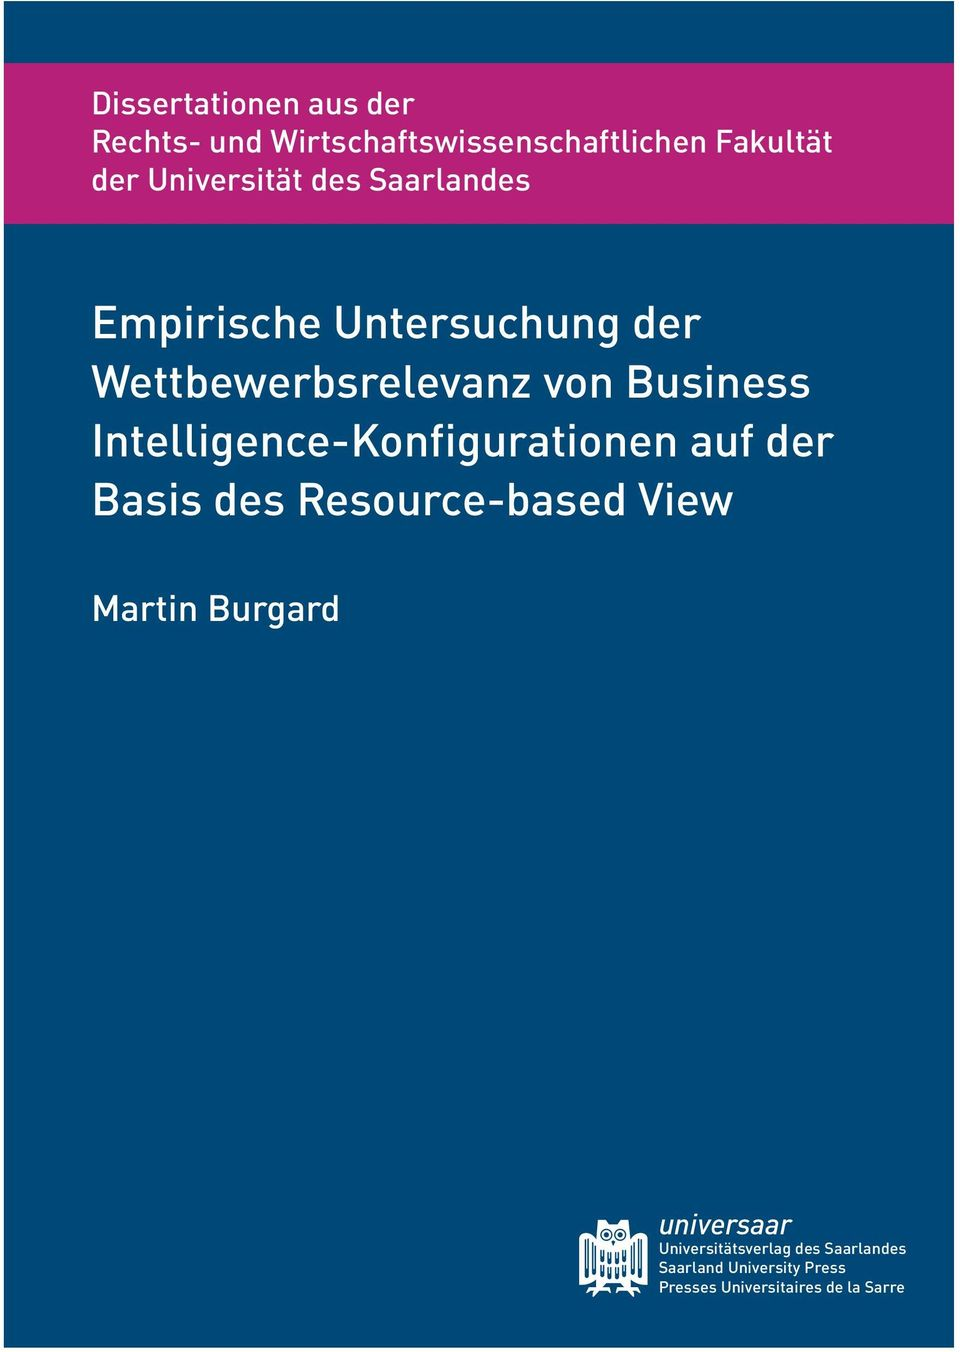 Intelligence-Konfigurationen auf der Basis des Resource-based View Martin Burgard